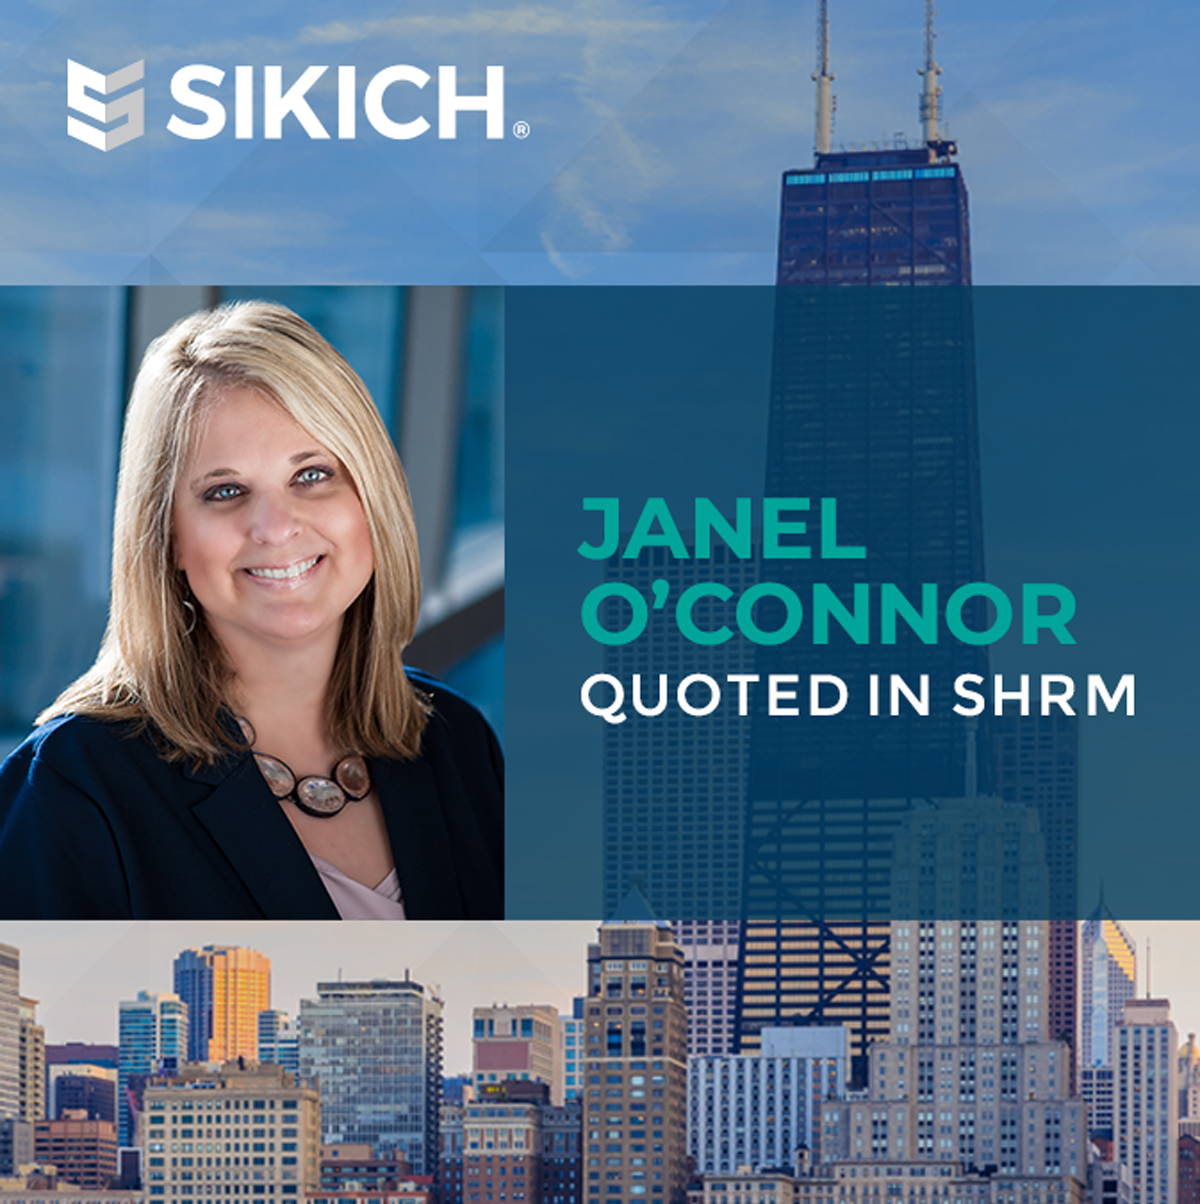 Janel-OConnor-Quoted-in-SHRM